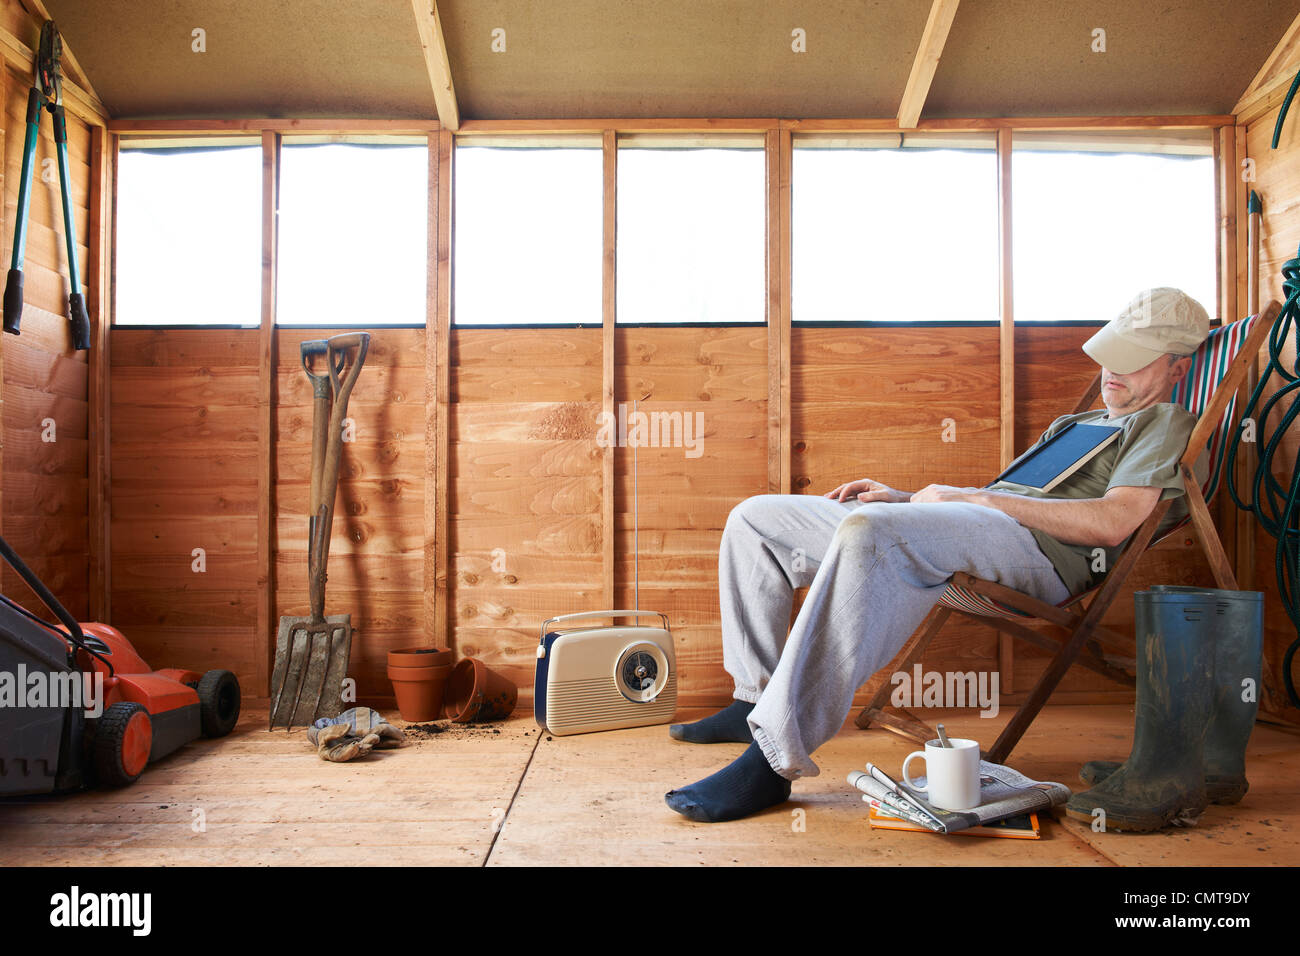 Man sitting in deckchair falling asleep in the shed - Stock Image